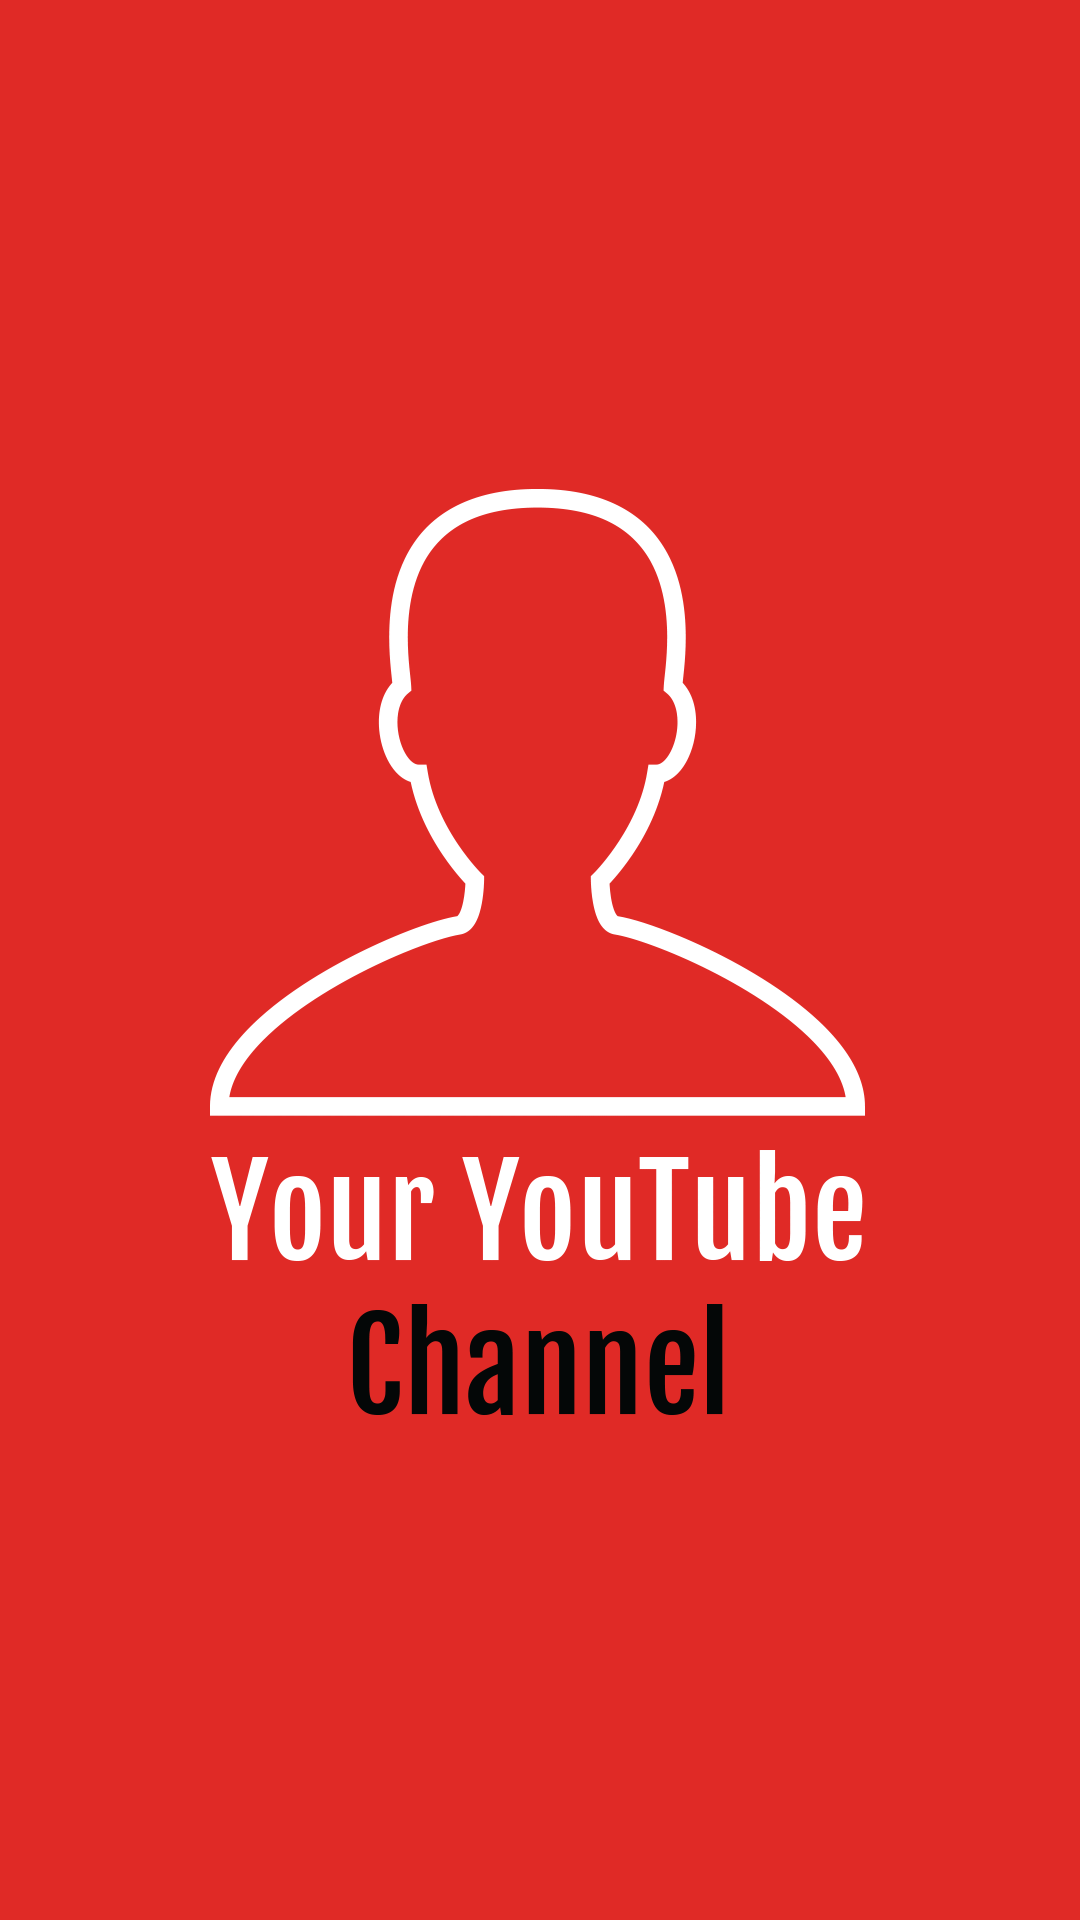 Youtube Channel Art Size Banner Thumbnail Icon: Your YouTube Channel By I108